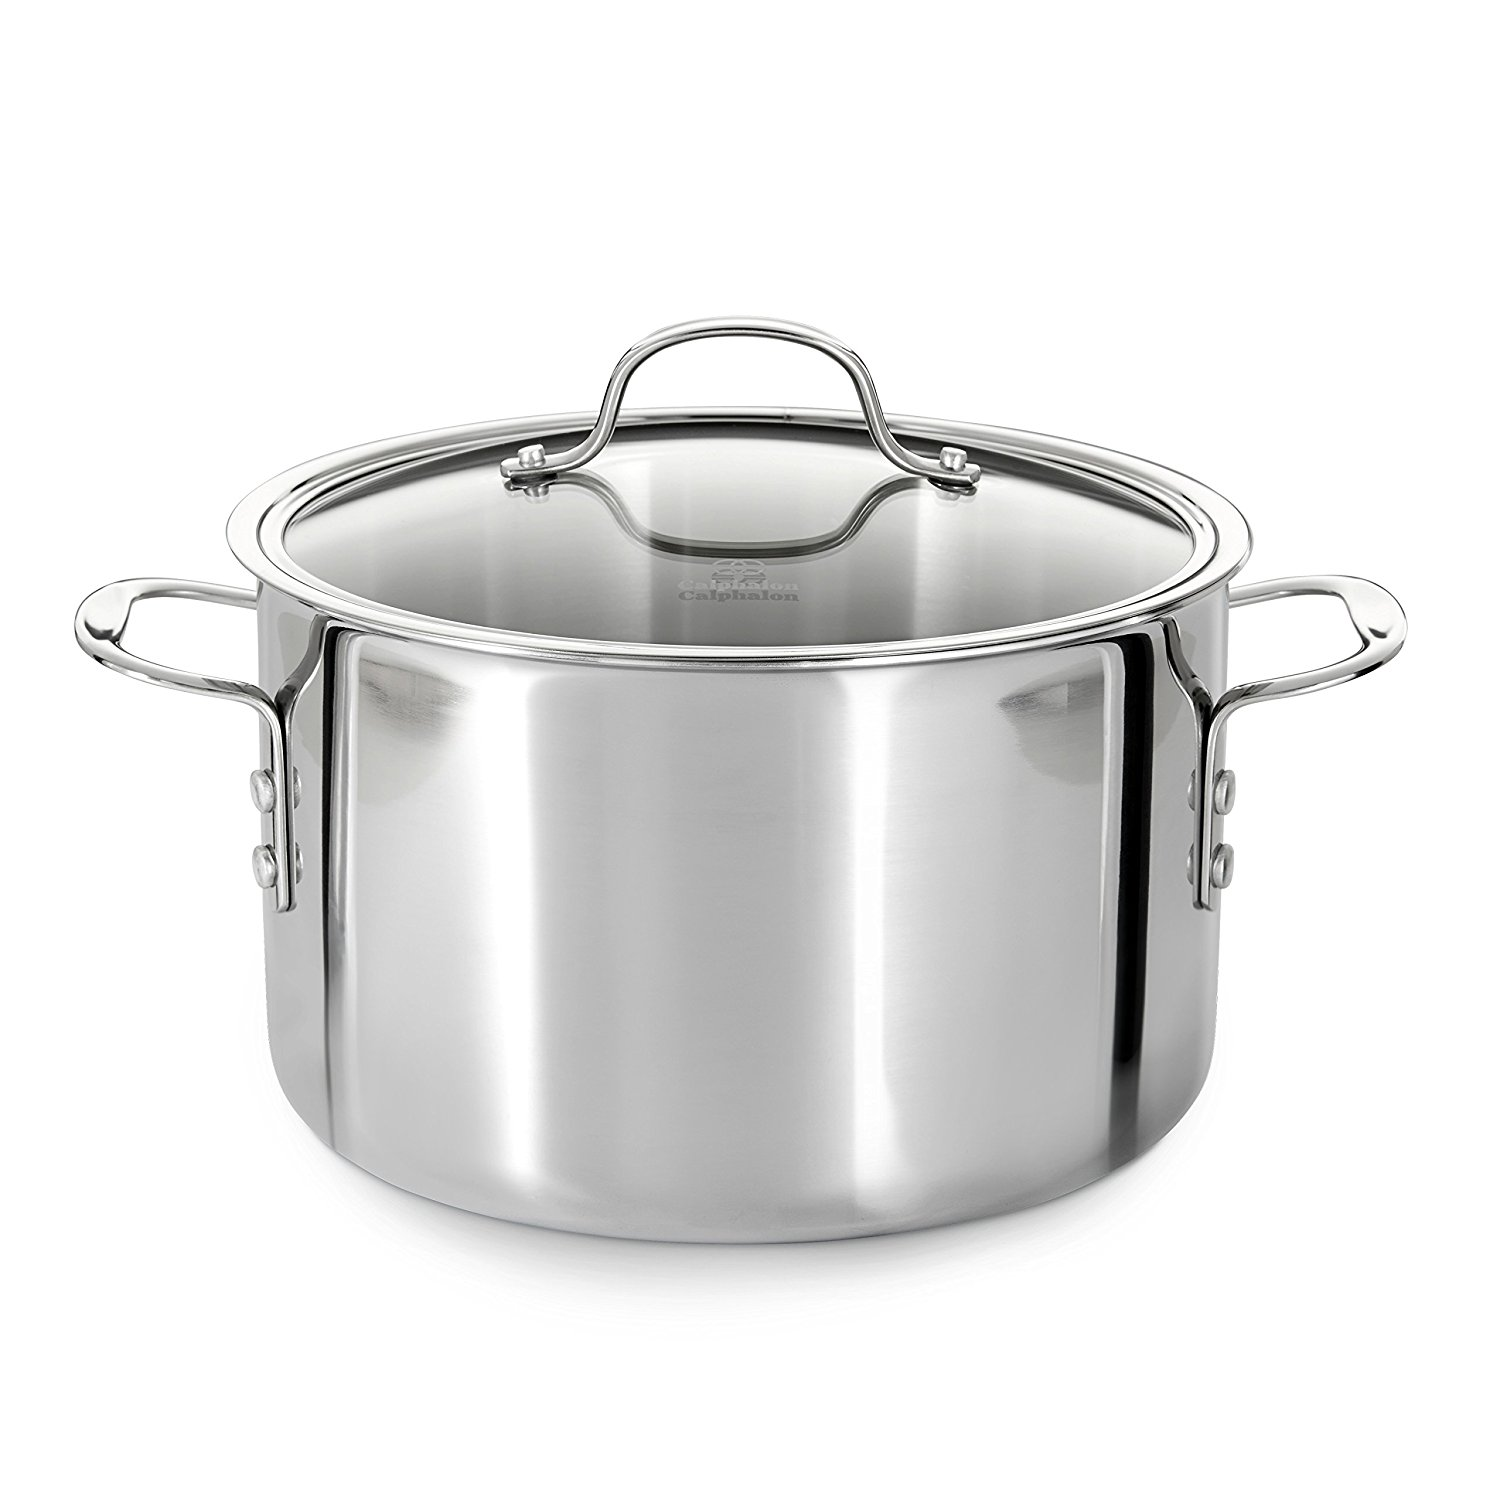 Calphalon Tri-Ply Stainless Steel 8-Quart Stock Pot with Cover – Other Cookware Also Available